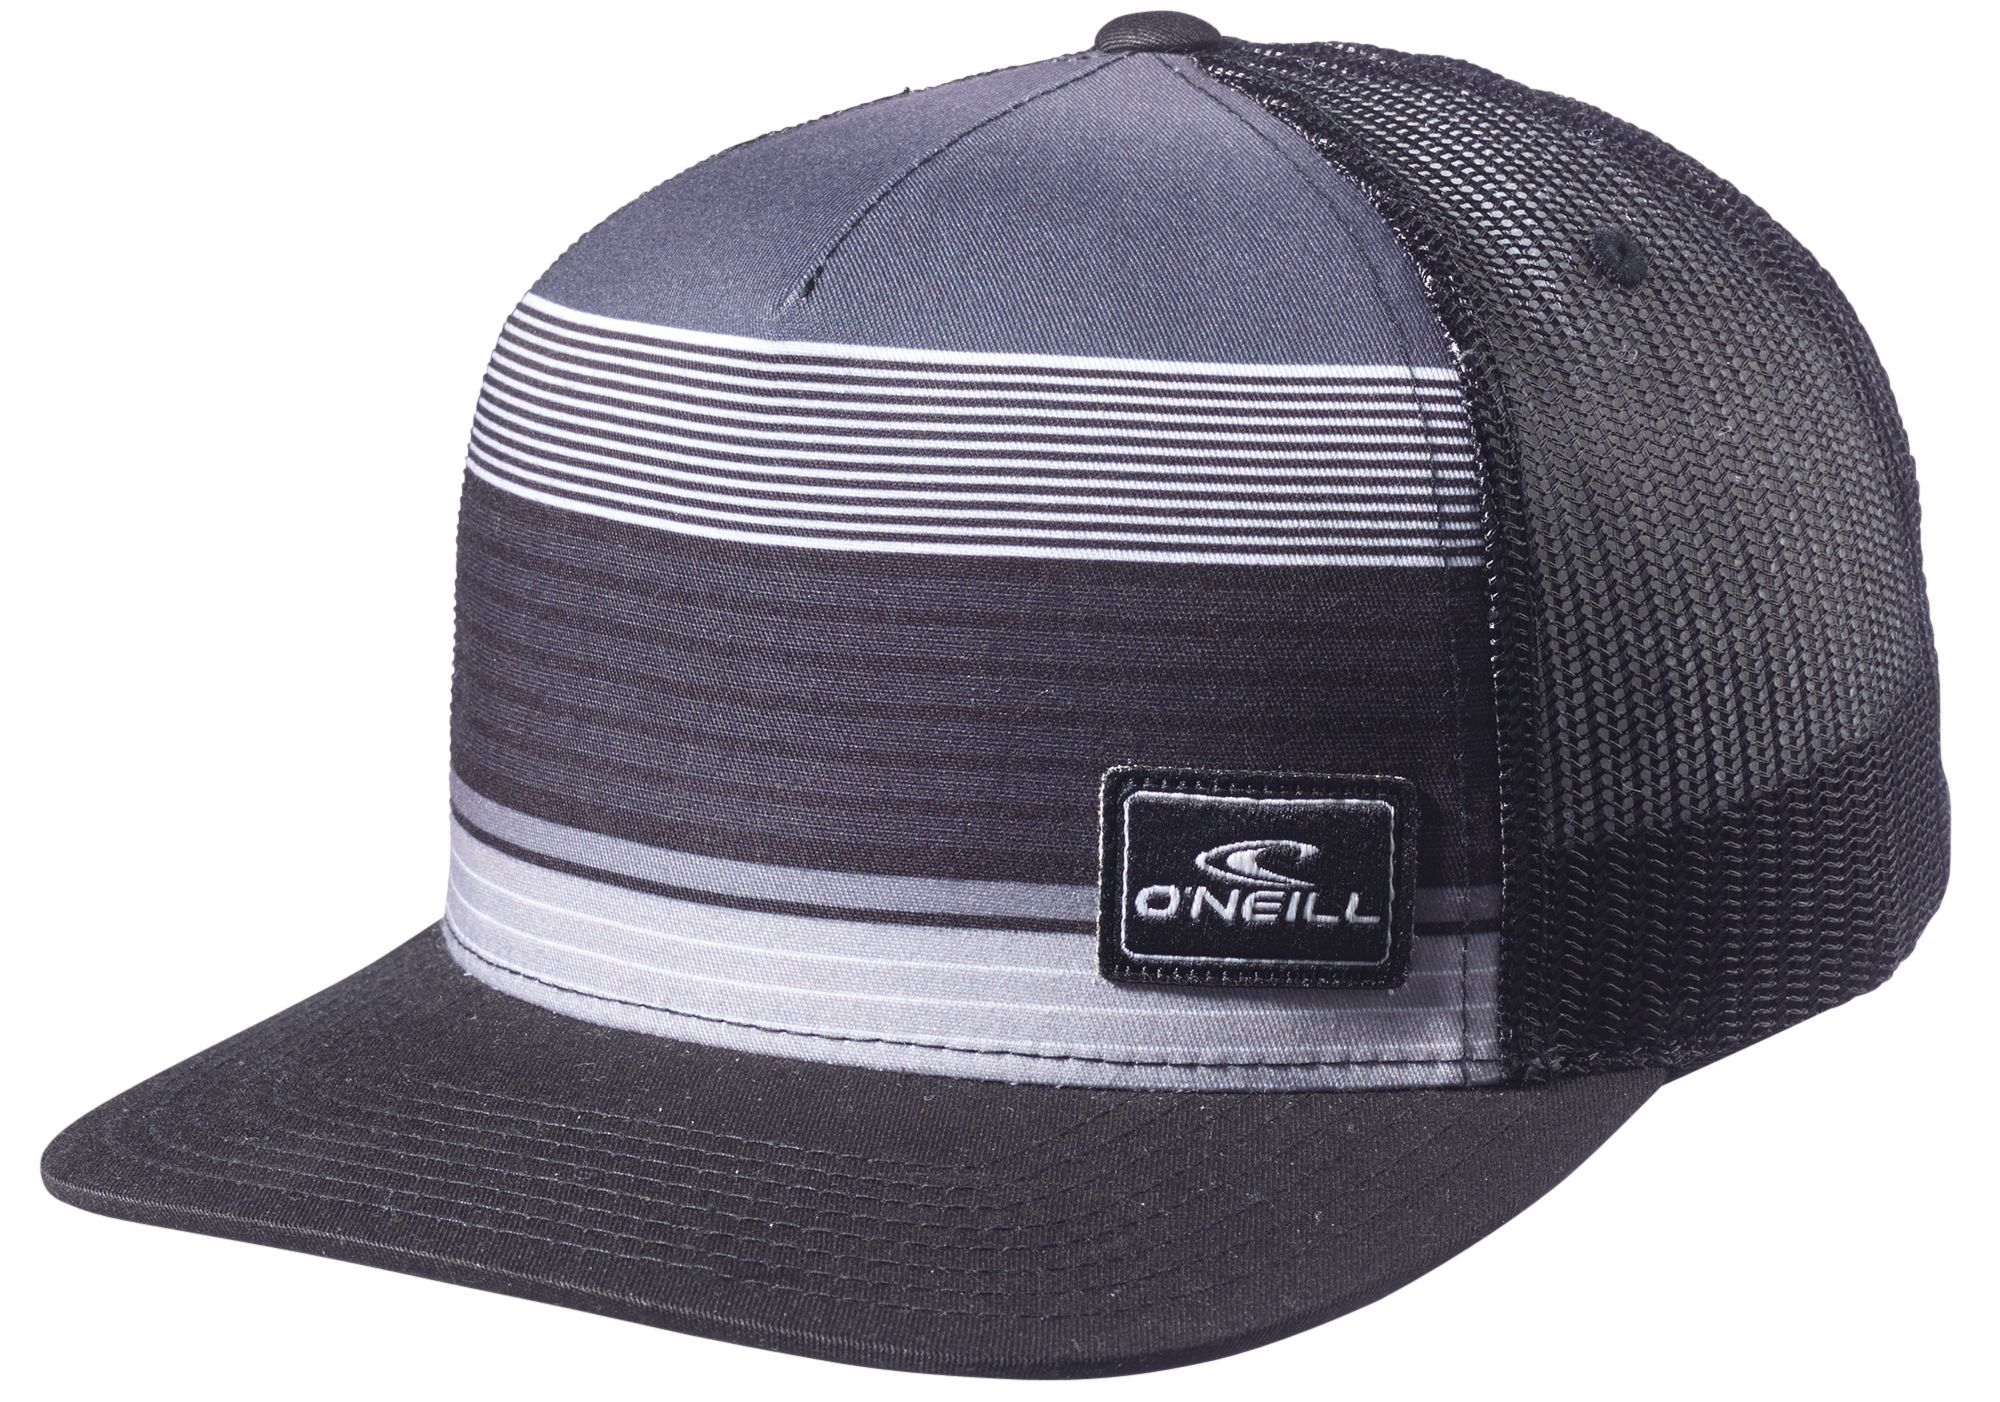 45d35fd7538 O Neill Men s Lennox Trucker Hat